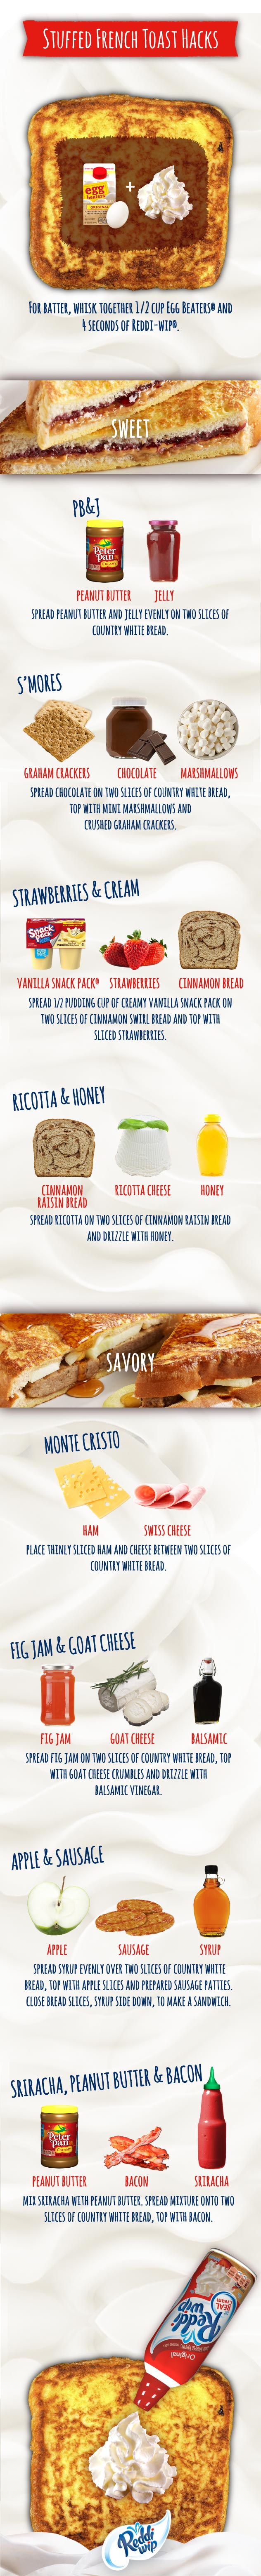 Stuffed-French-Toast-Hacks_Chart_Reddi-Wipp_632x6246.jpg